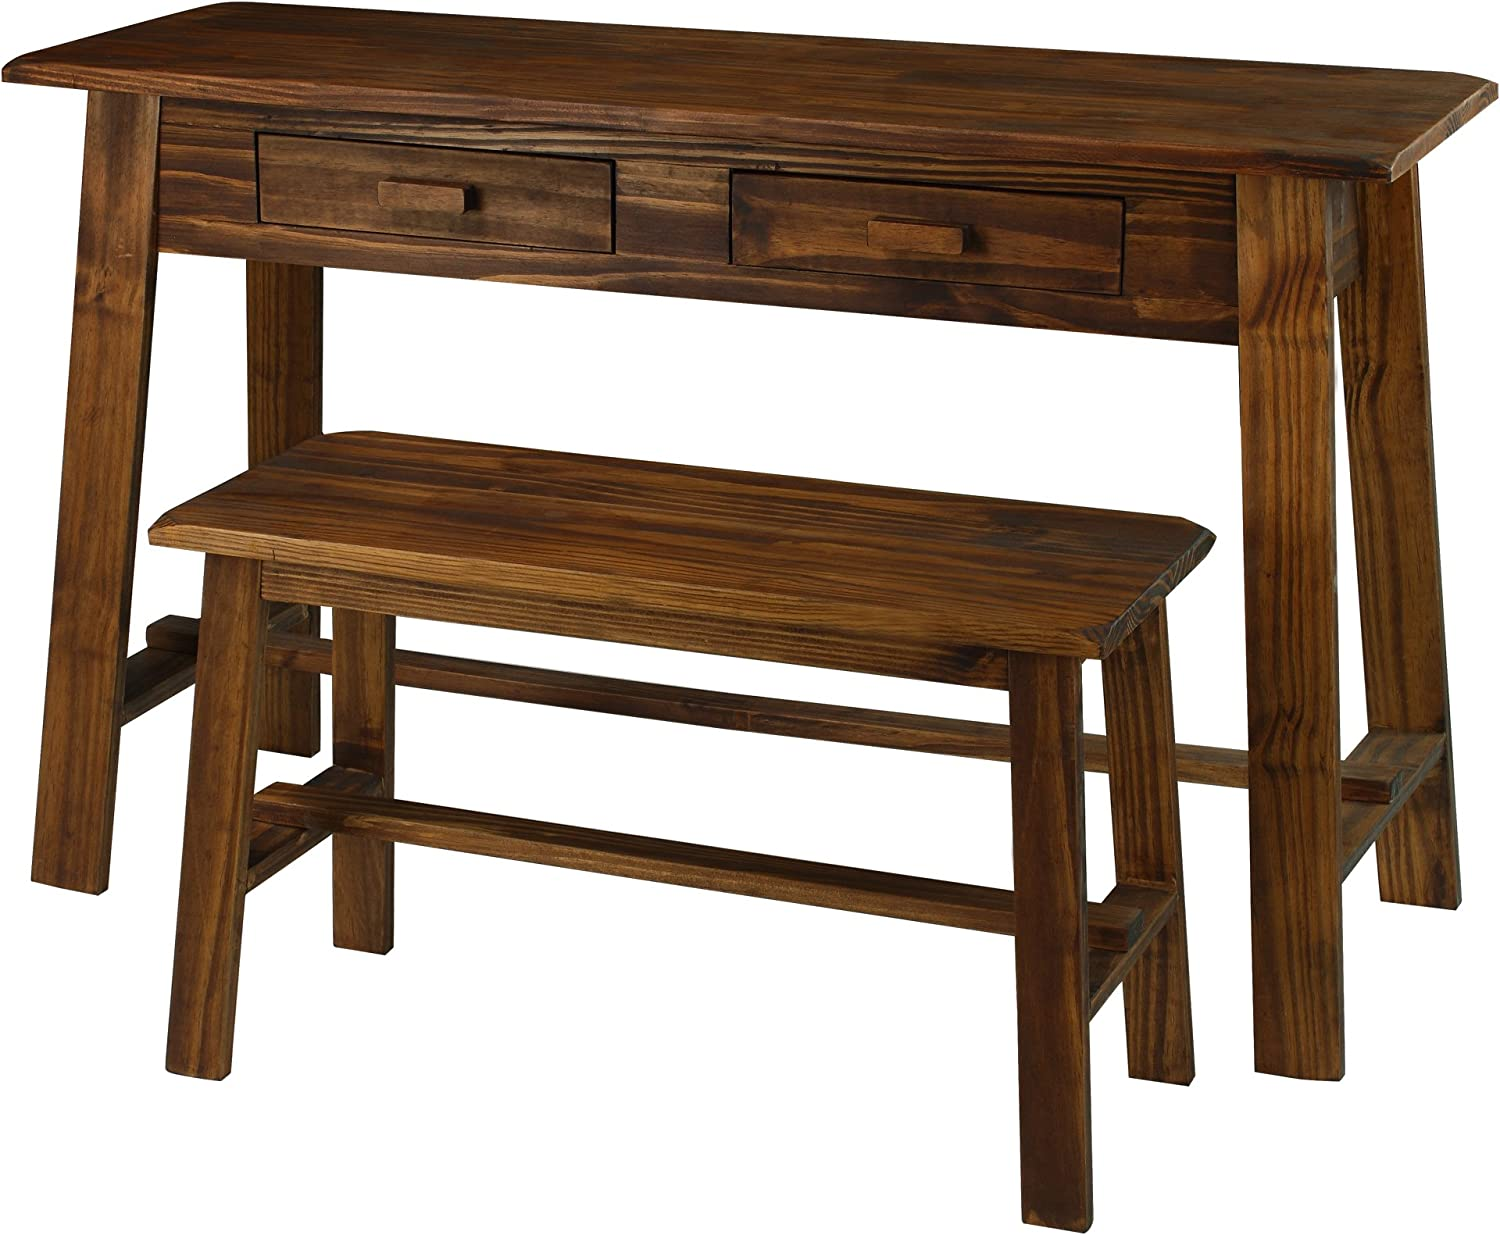 Casual Home 354-07 Nostalgia Rustic Desk with Bench, Mocha